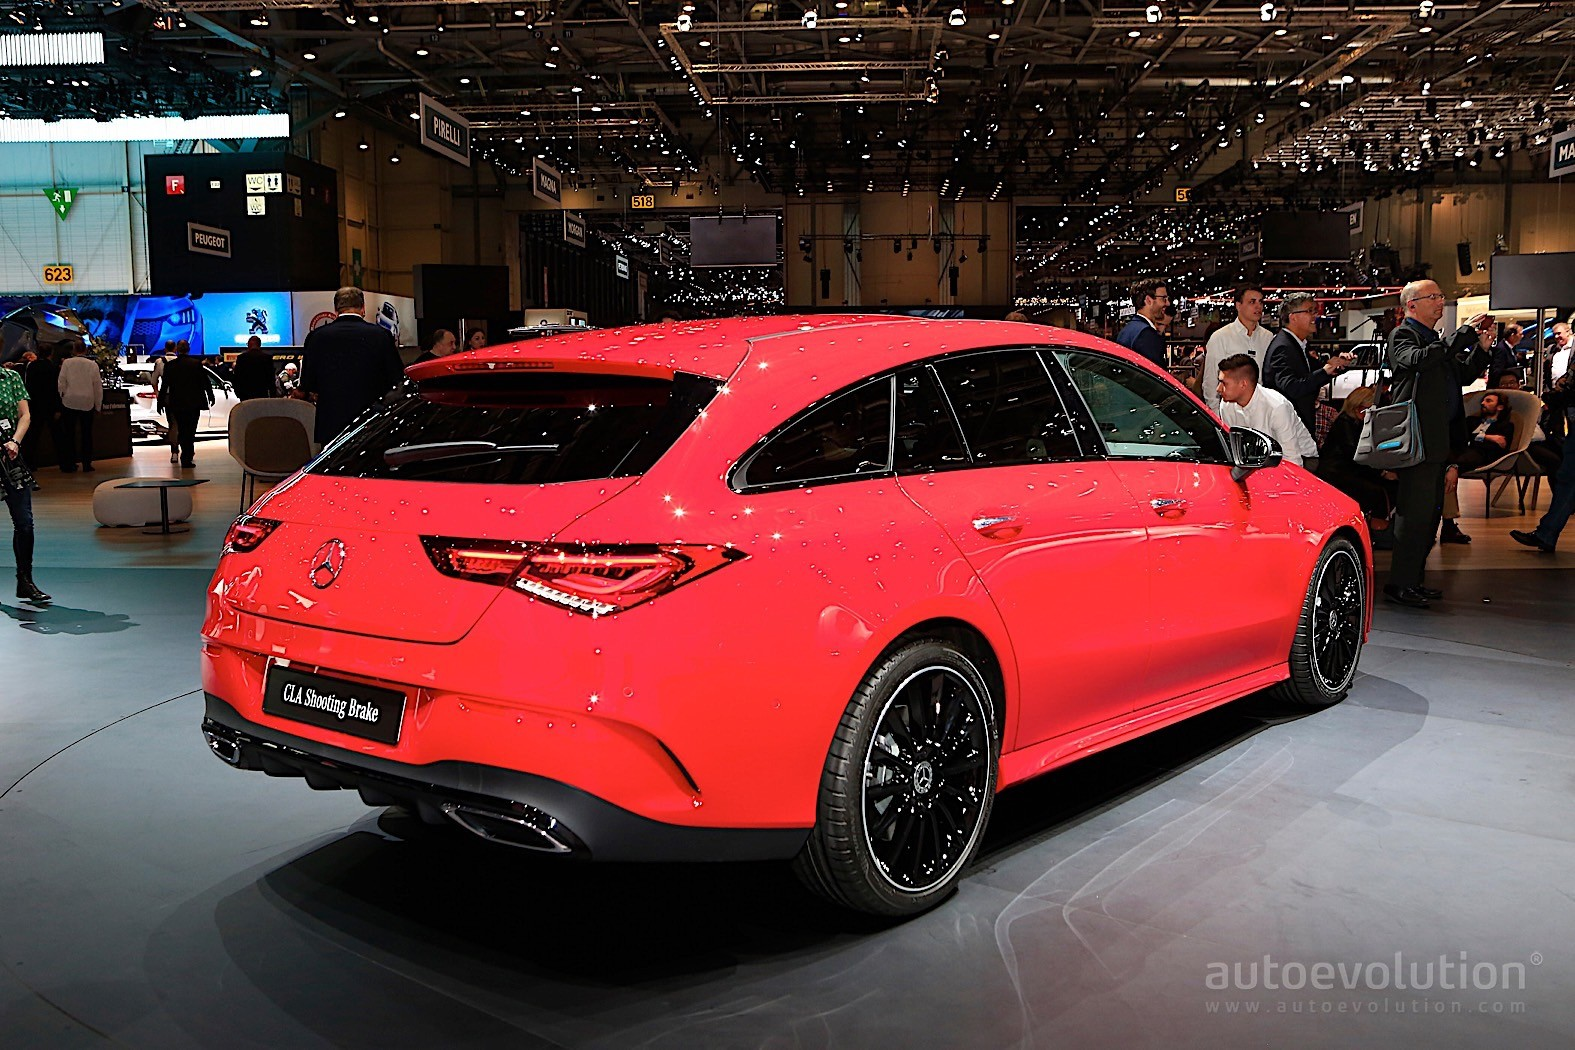 2020 mercedes-benz cla shooting brake lures the crowds in geneva